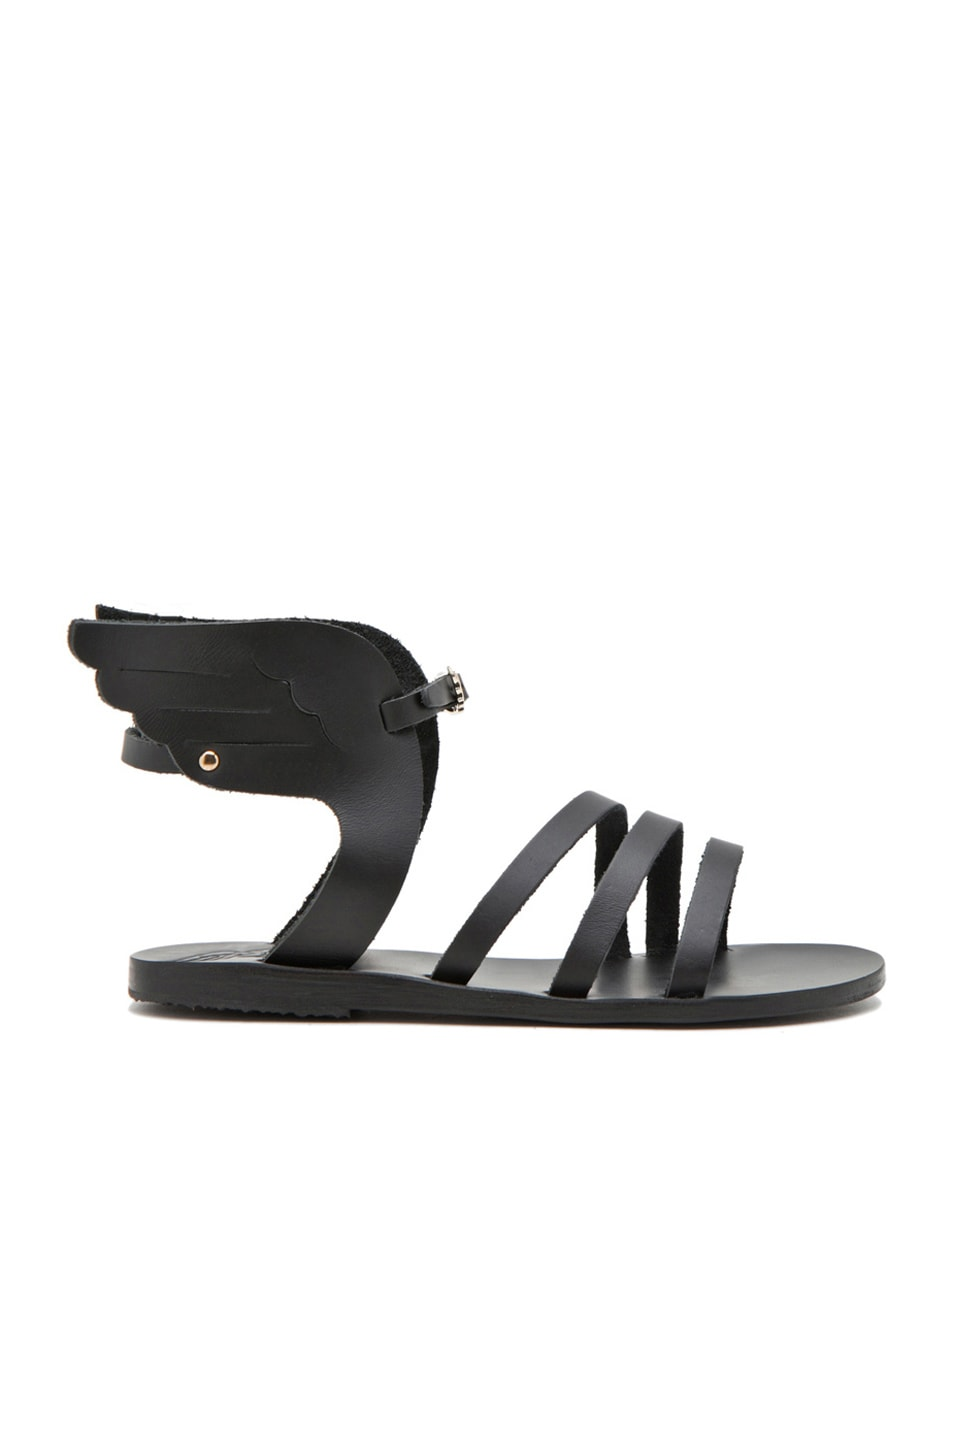 Image 1 of Ancient Greek Sandals Ikaria Calfskin Leather Sandals in Black